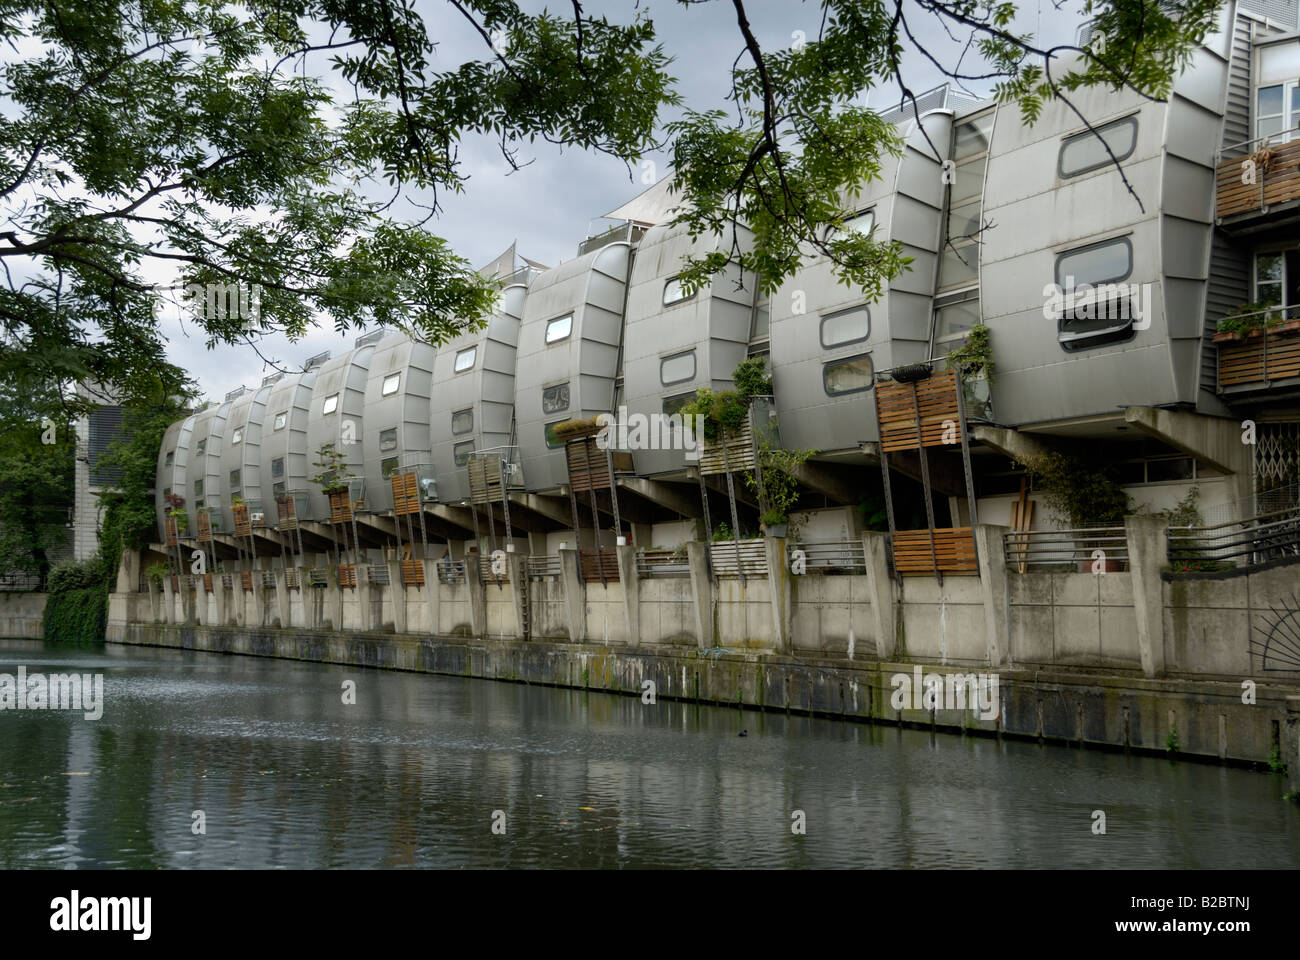 Futuristische Häuser in Reihe von Grand Union Canal, London Stockfoto